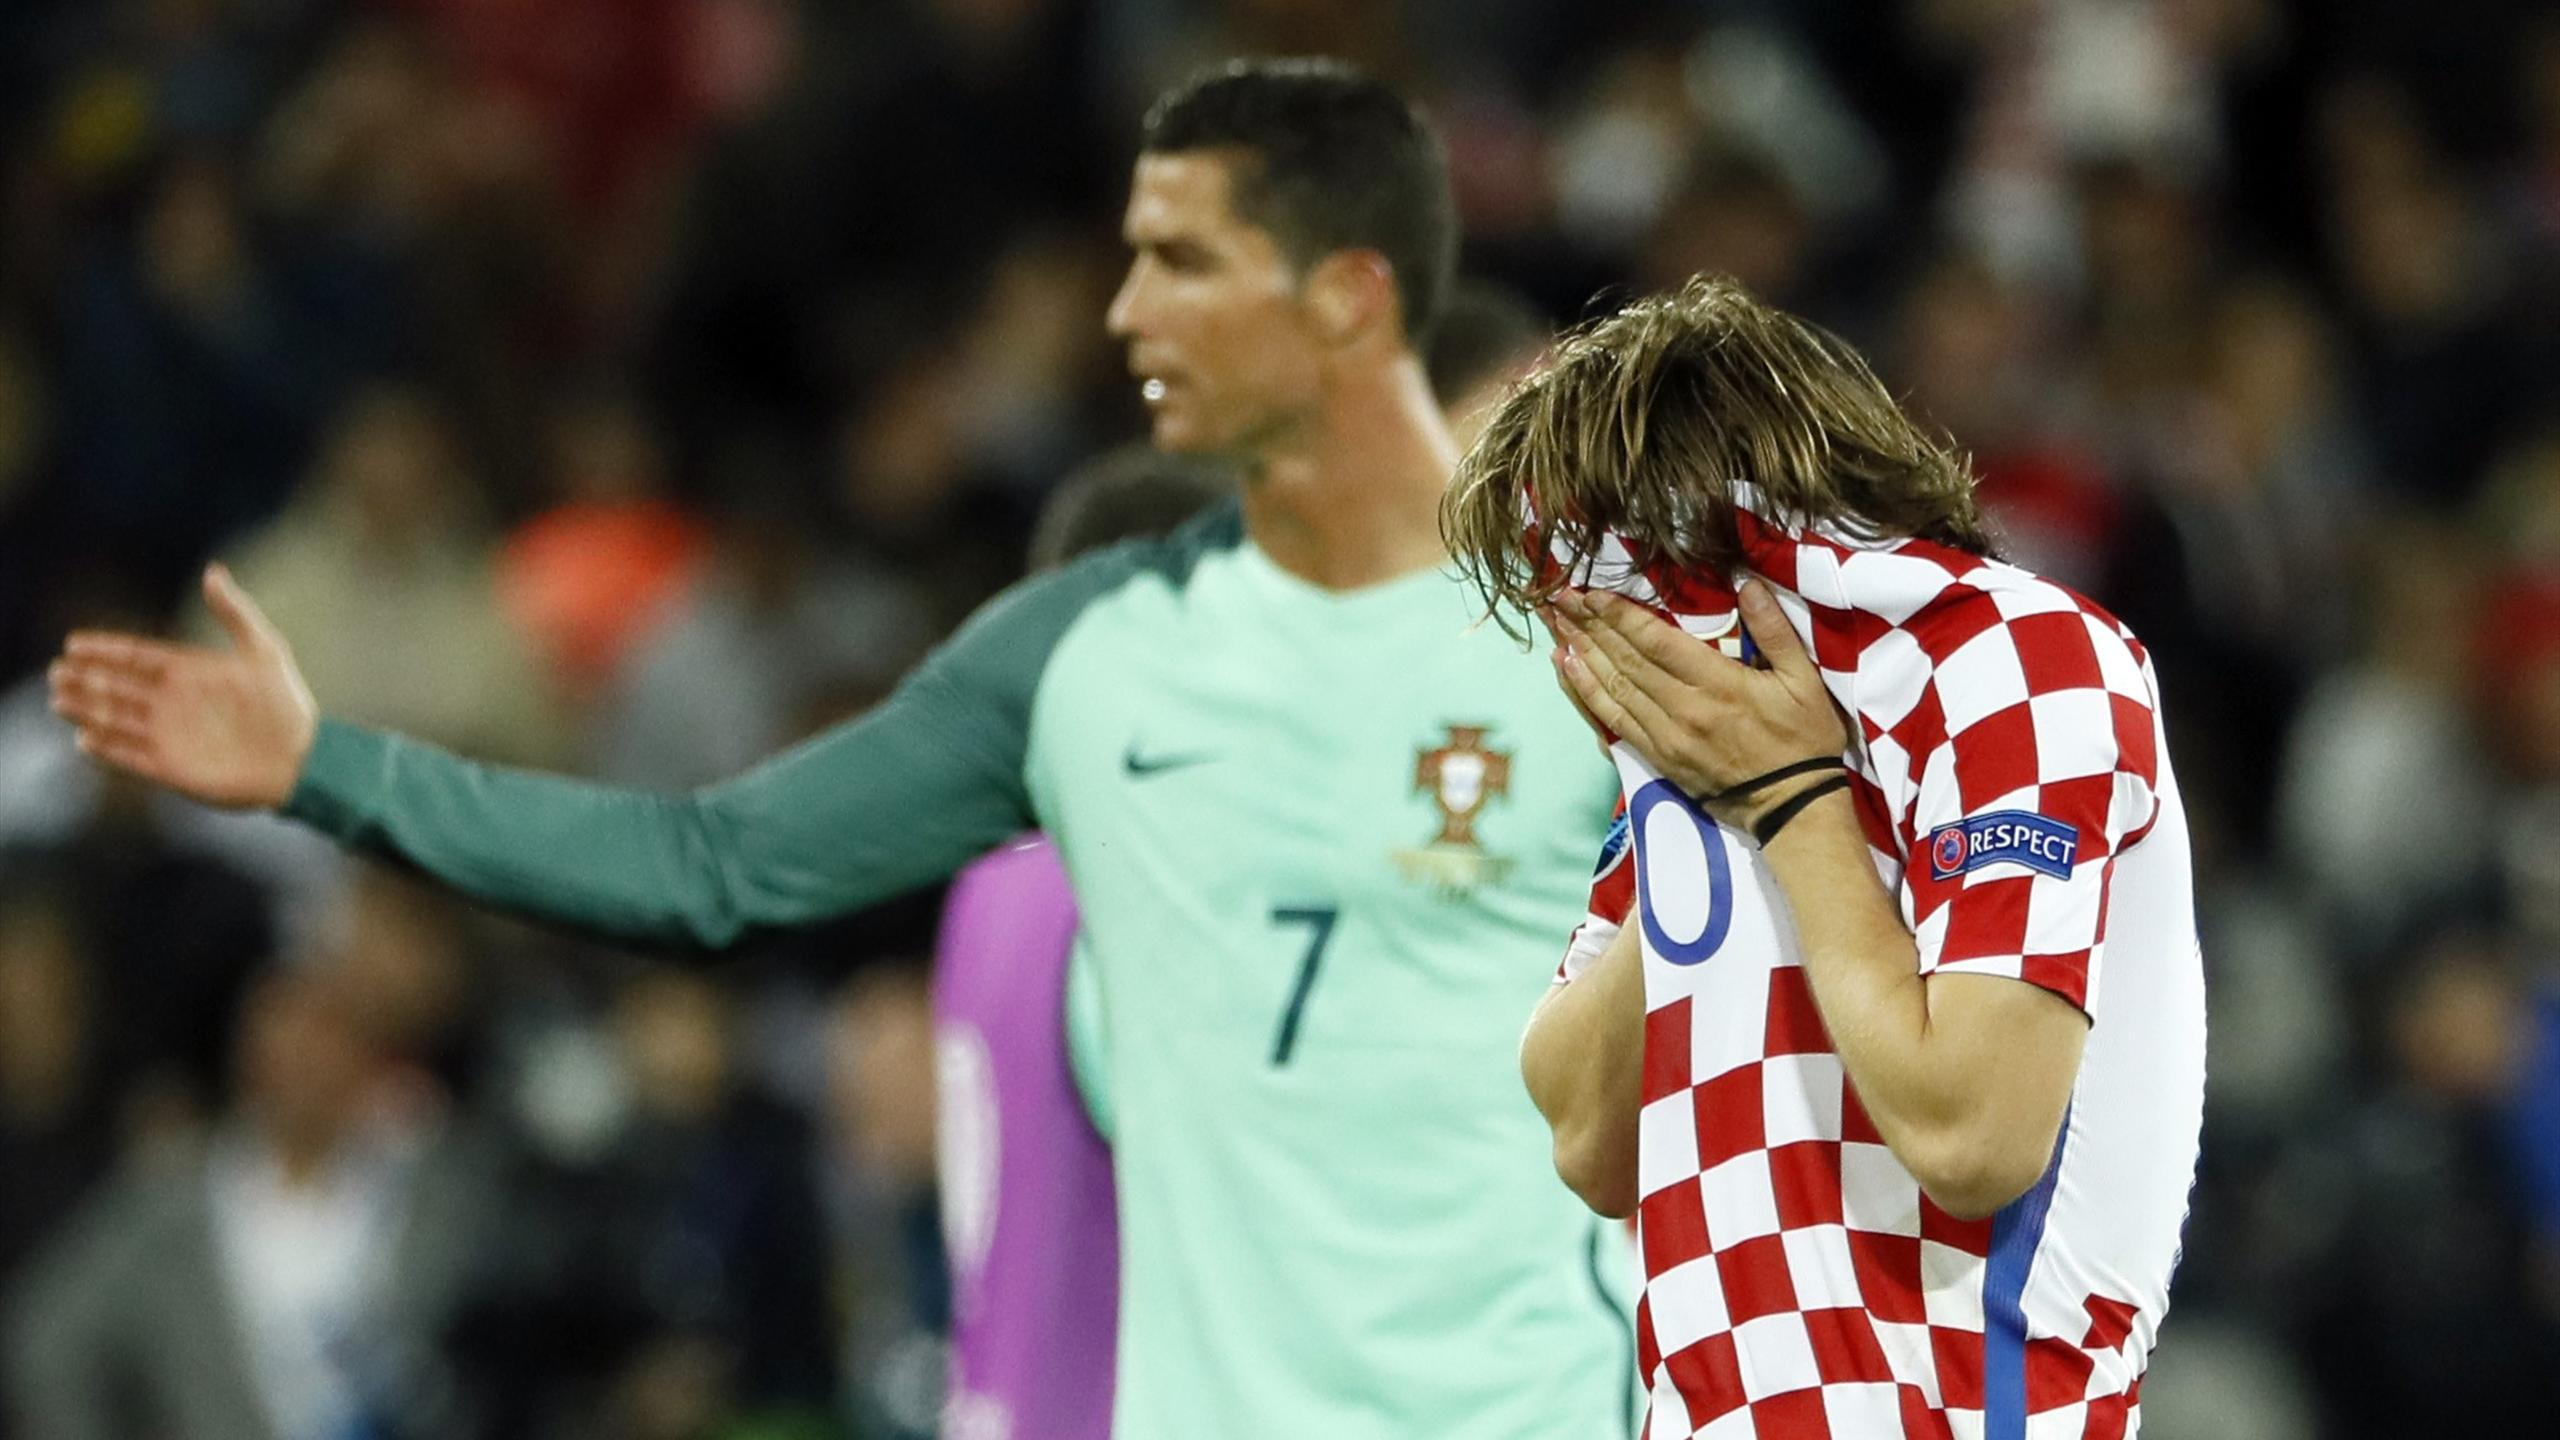 Croatia's Luka Modric reacts as Portugal's Cristiano Ronaldo looks on after the game at Euro 2016